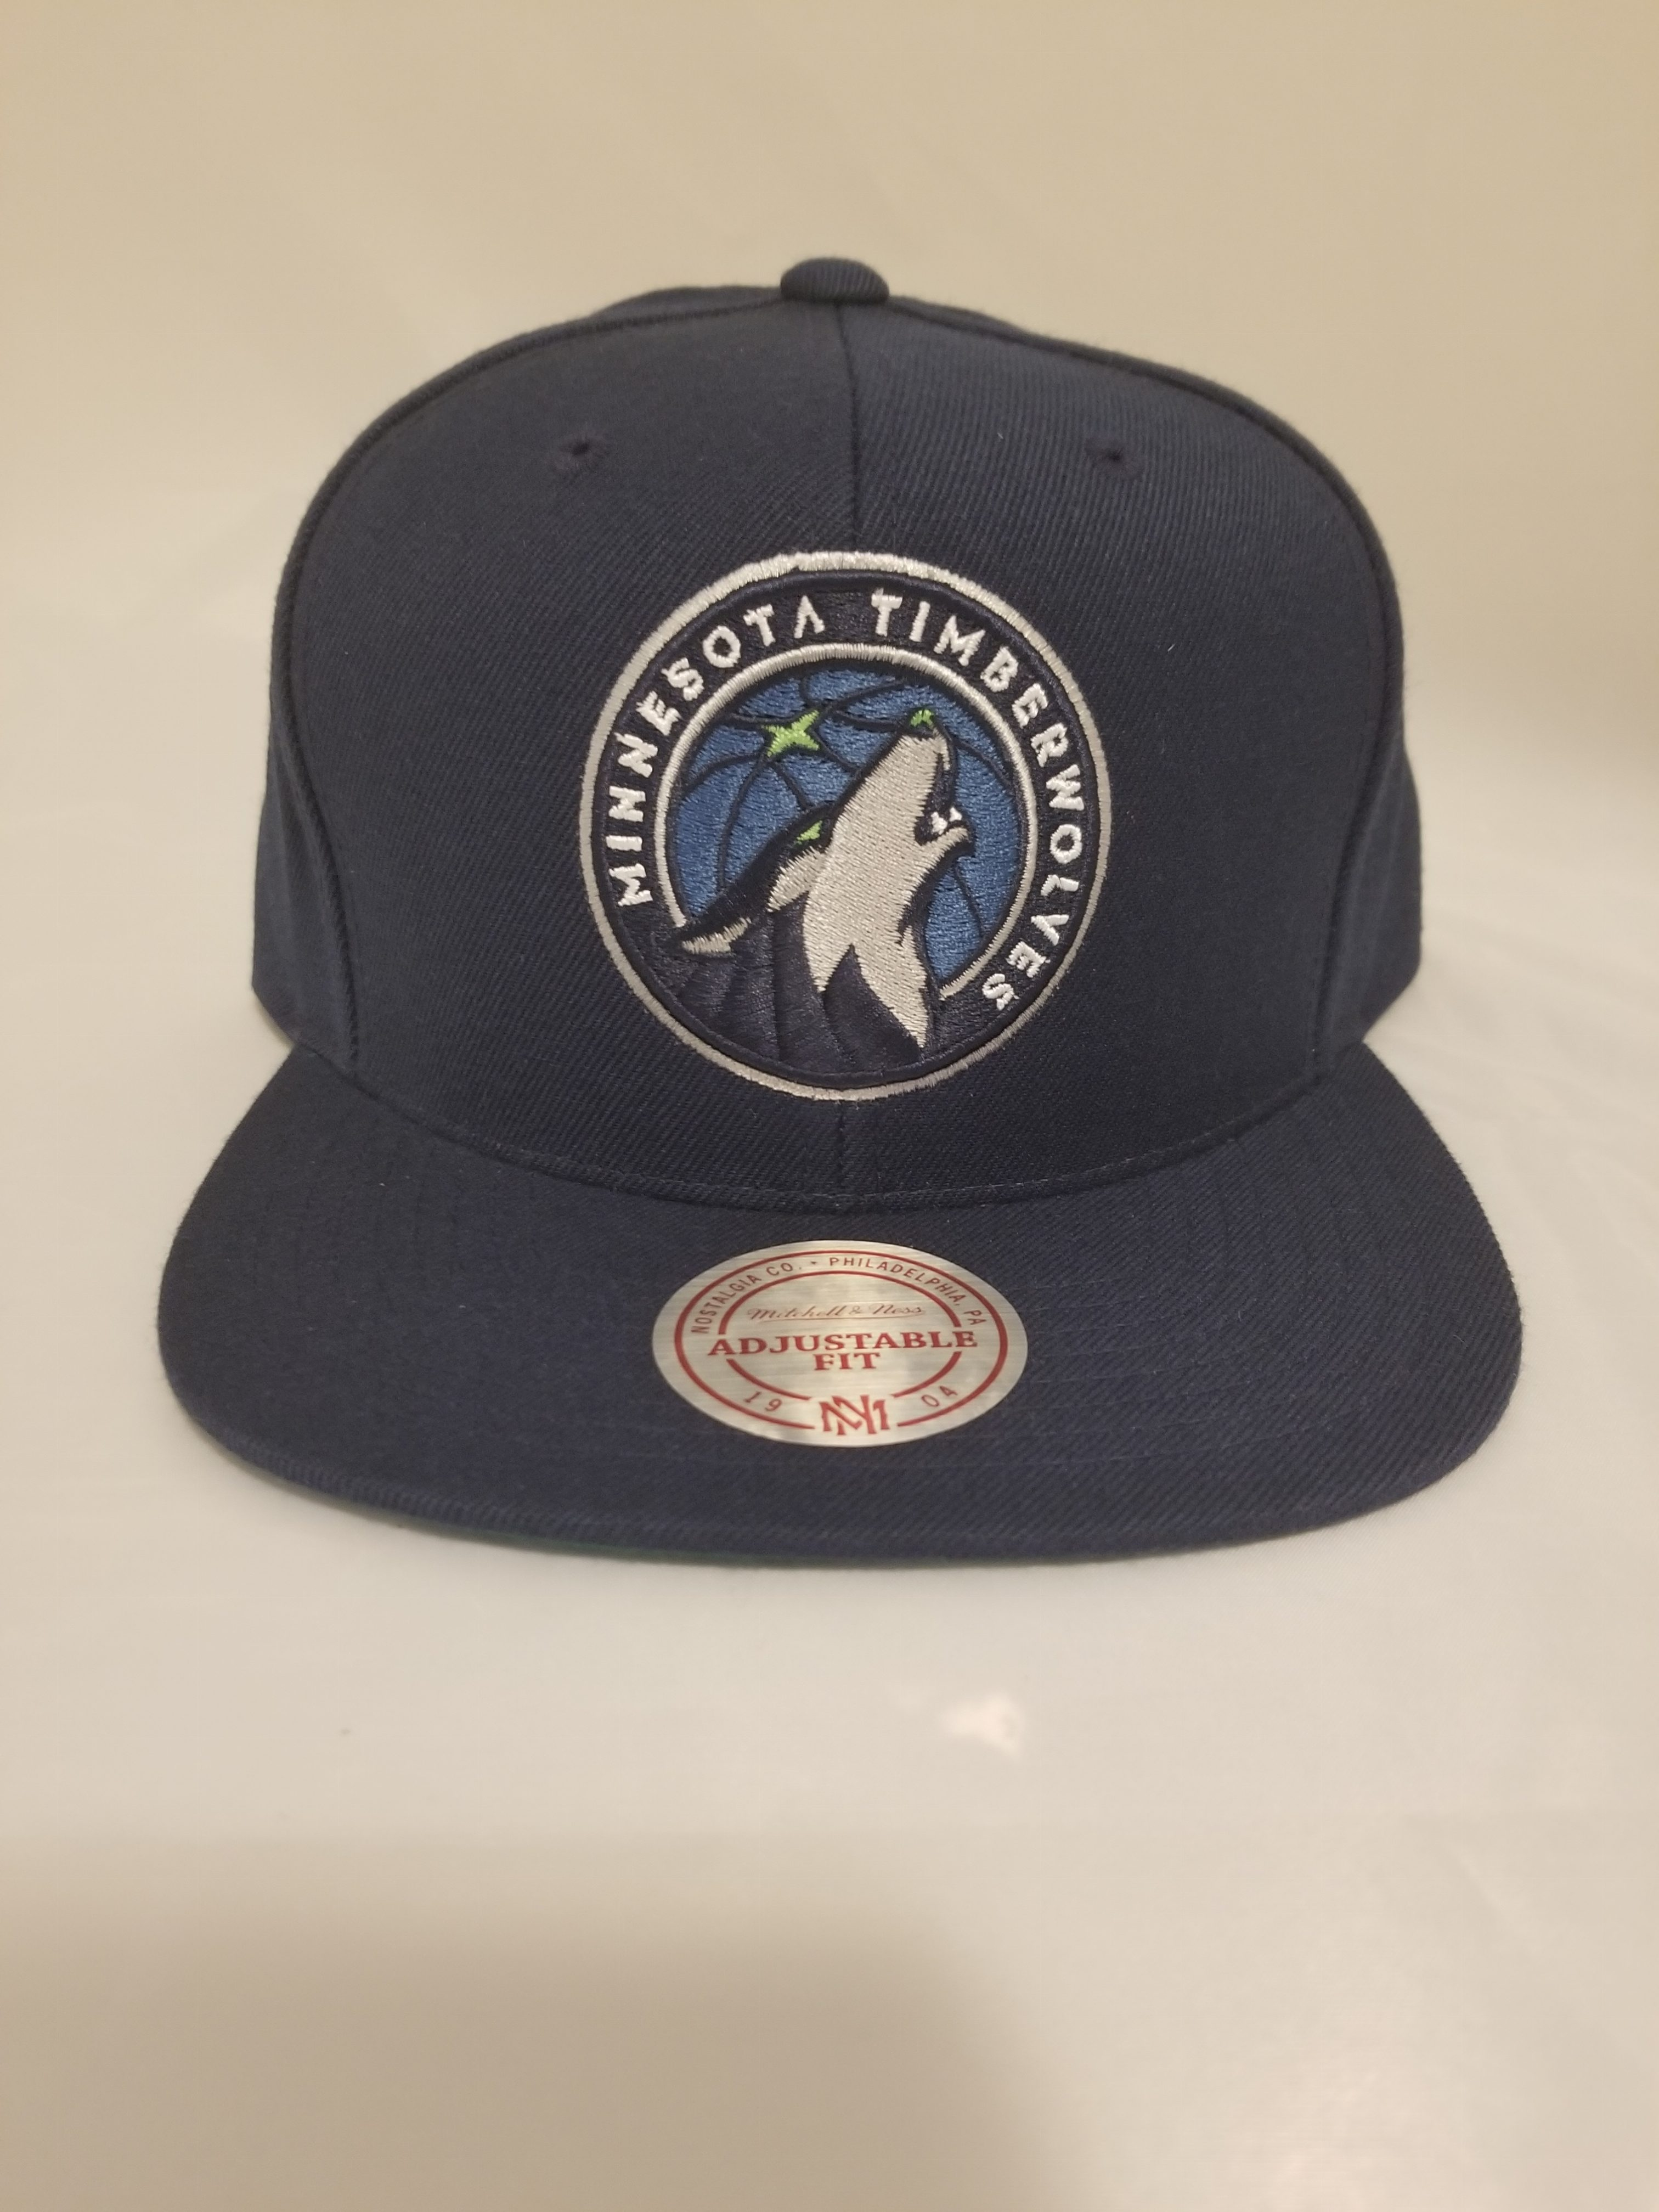 36a58a39 Mitchell and Ness Minnesota Timberwolves Wool Solid XL 2T Snapback Cap.  $44.99. prev